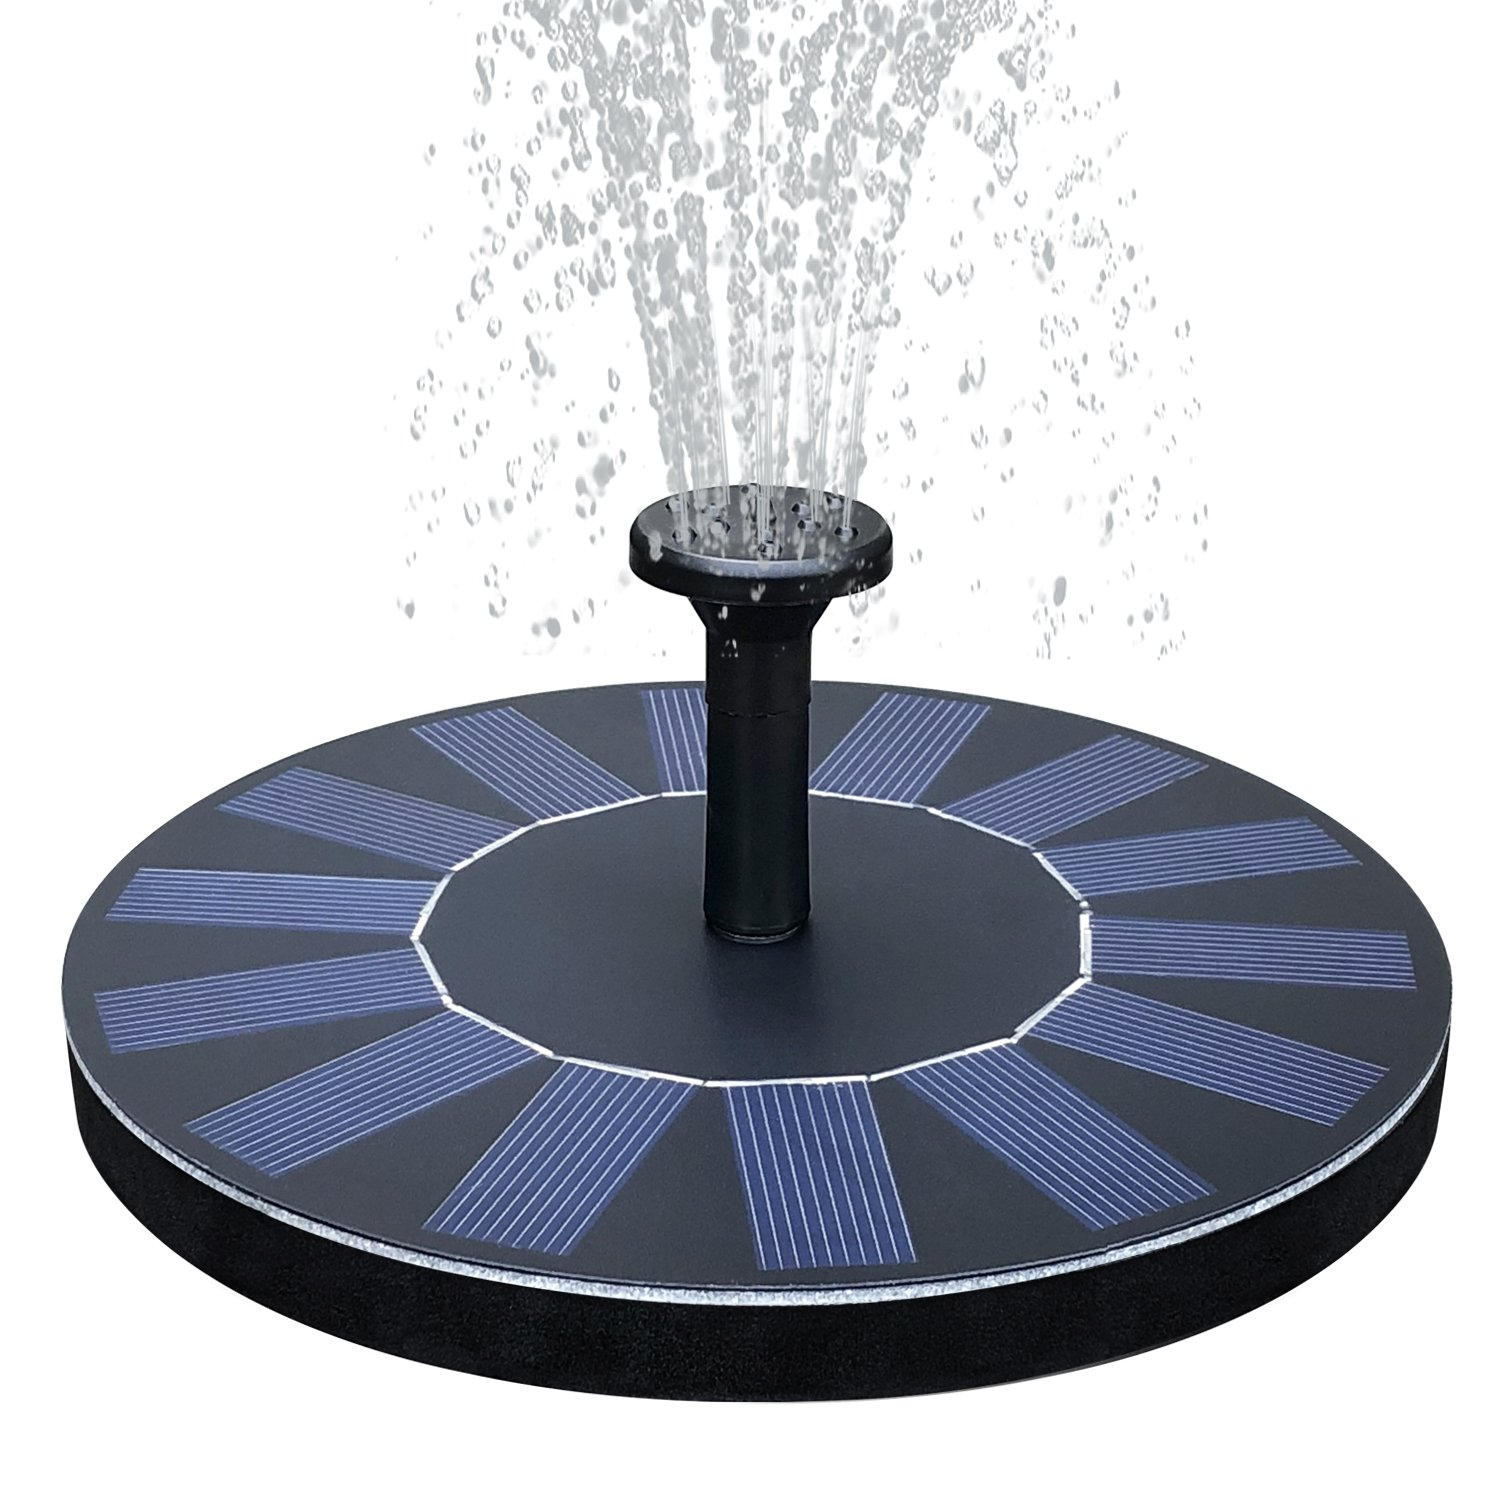 FEELLE Solar Power Fountain Pump 1.4W Solar Panel Floating Submersible Water Pump for Bird Bath, Pond, Pool, Rockery Fountain and Garden Decoration FLBDC03